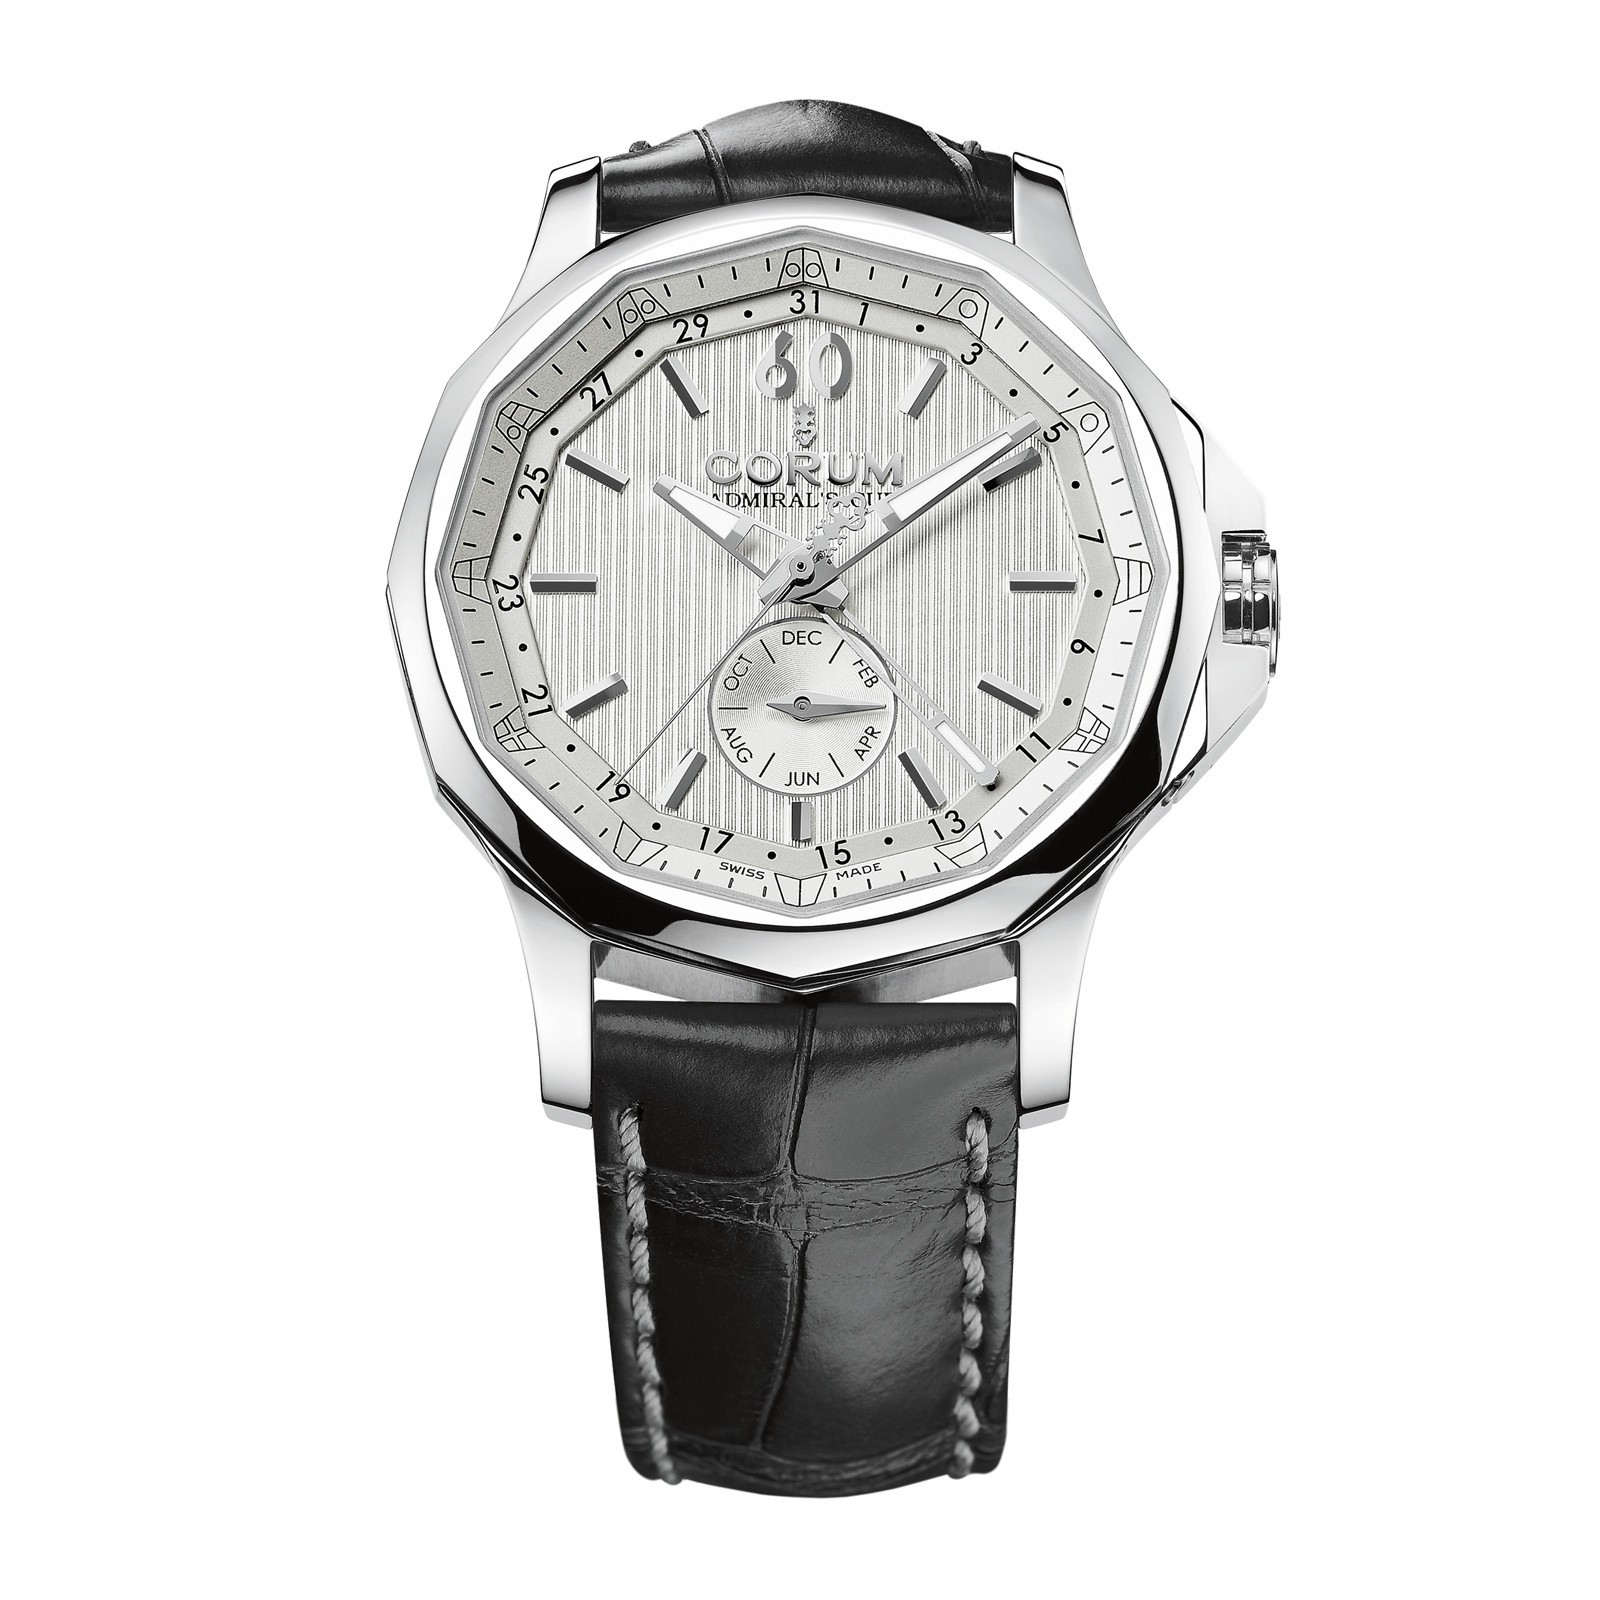 Corum Admirals Cup Legend 42 Annual Calendar in Steel